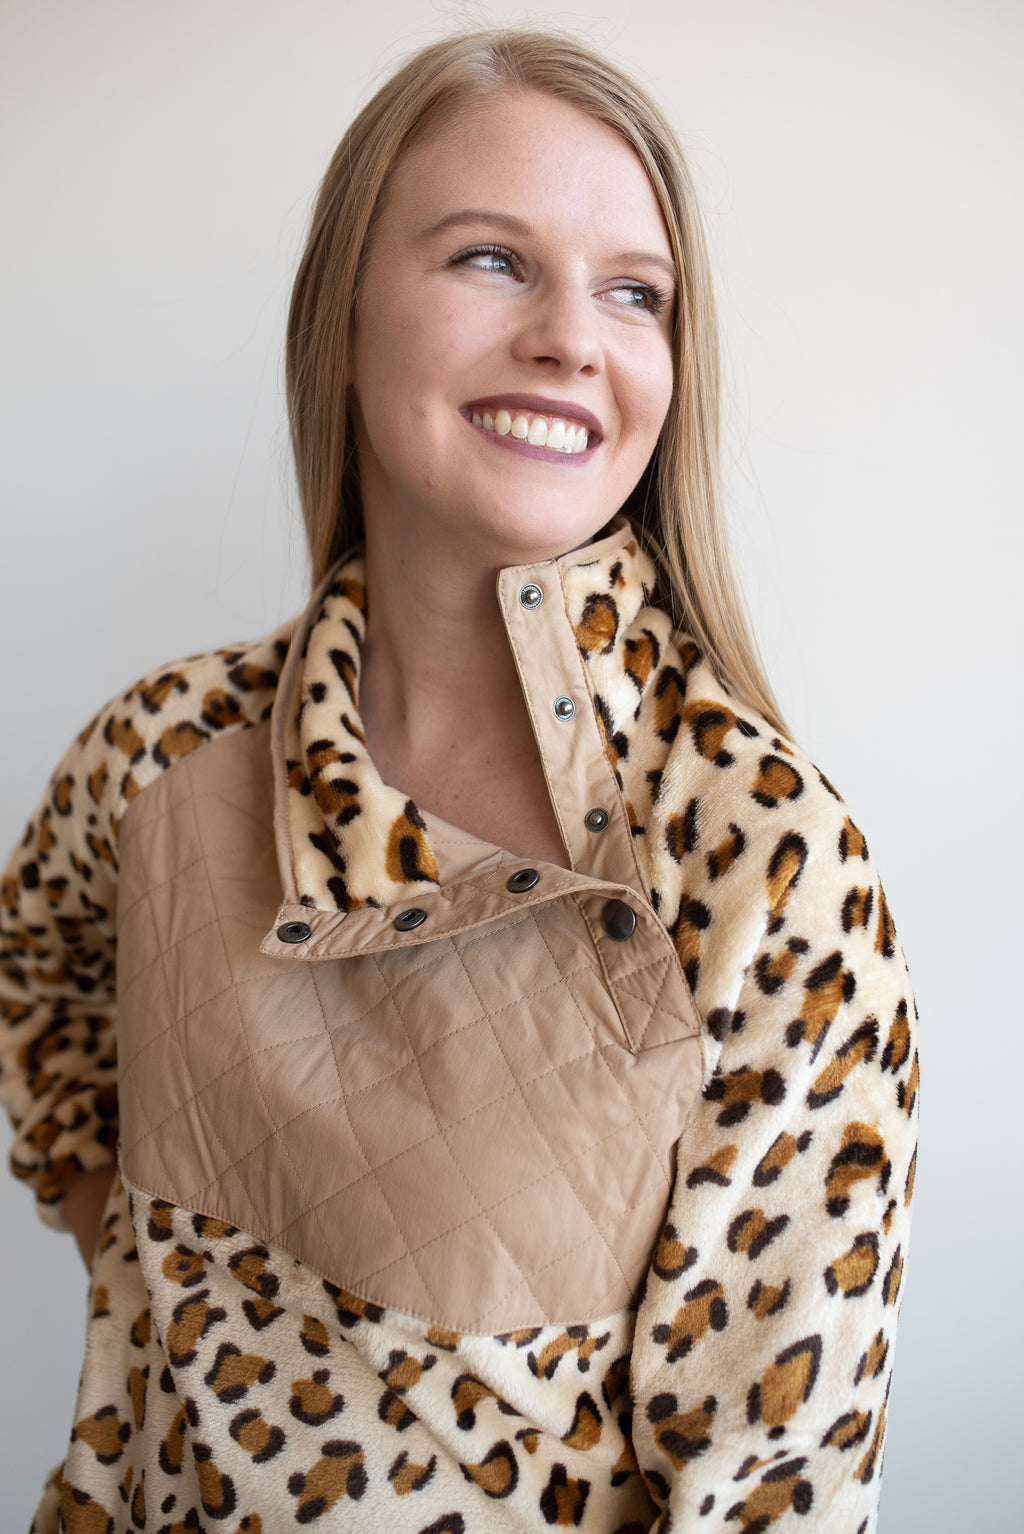 Leopard Fleece Jacket - Beige